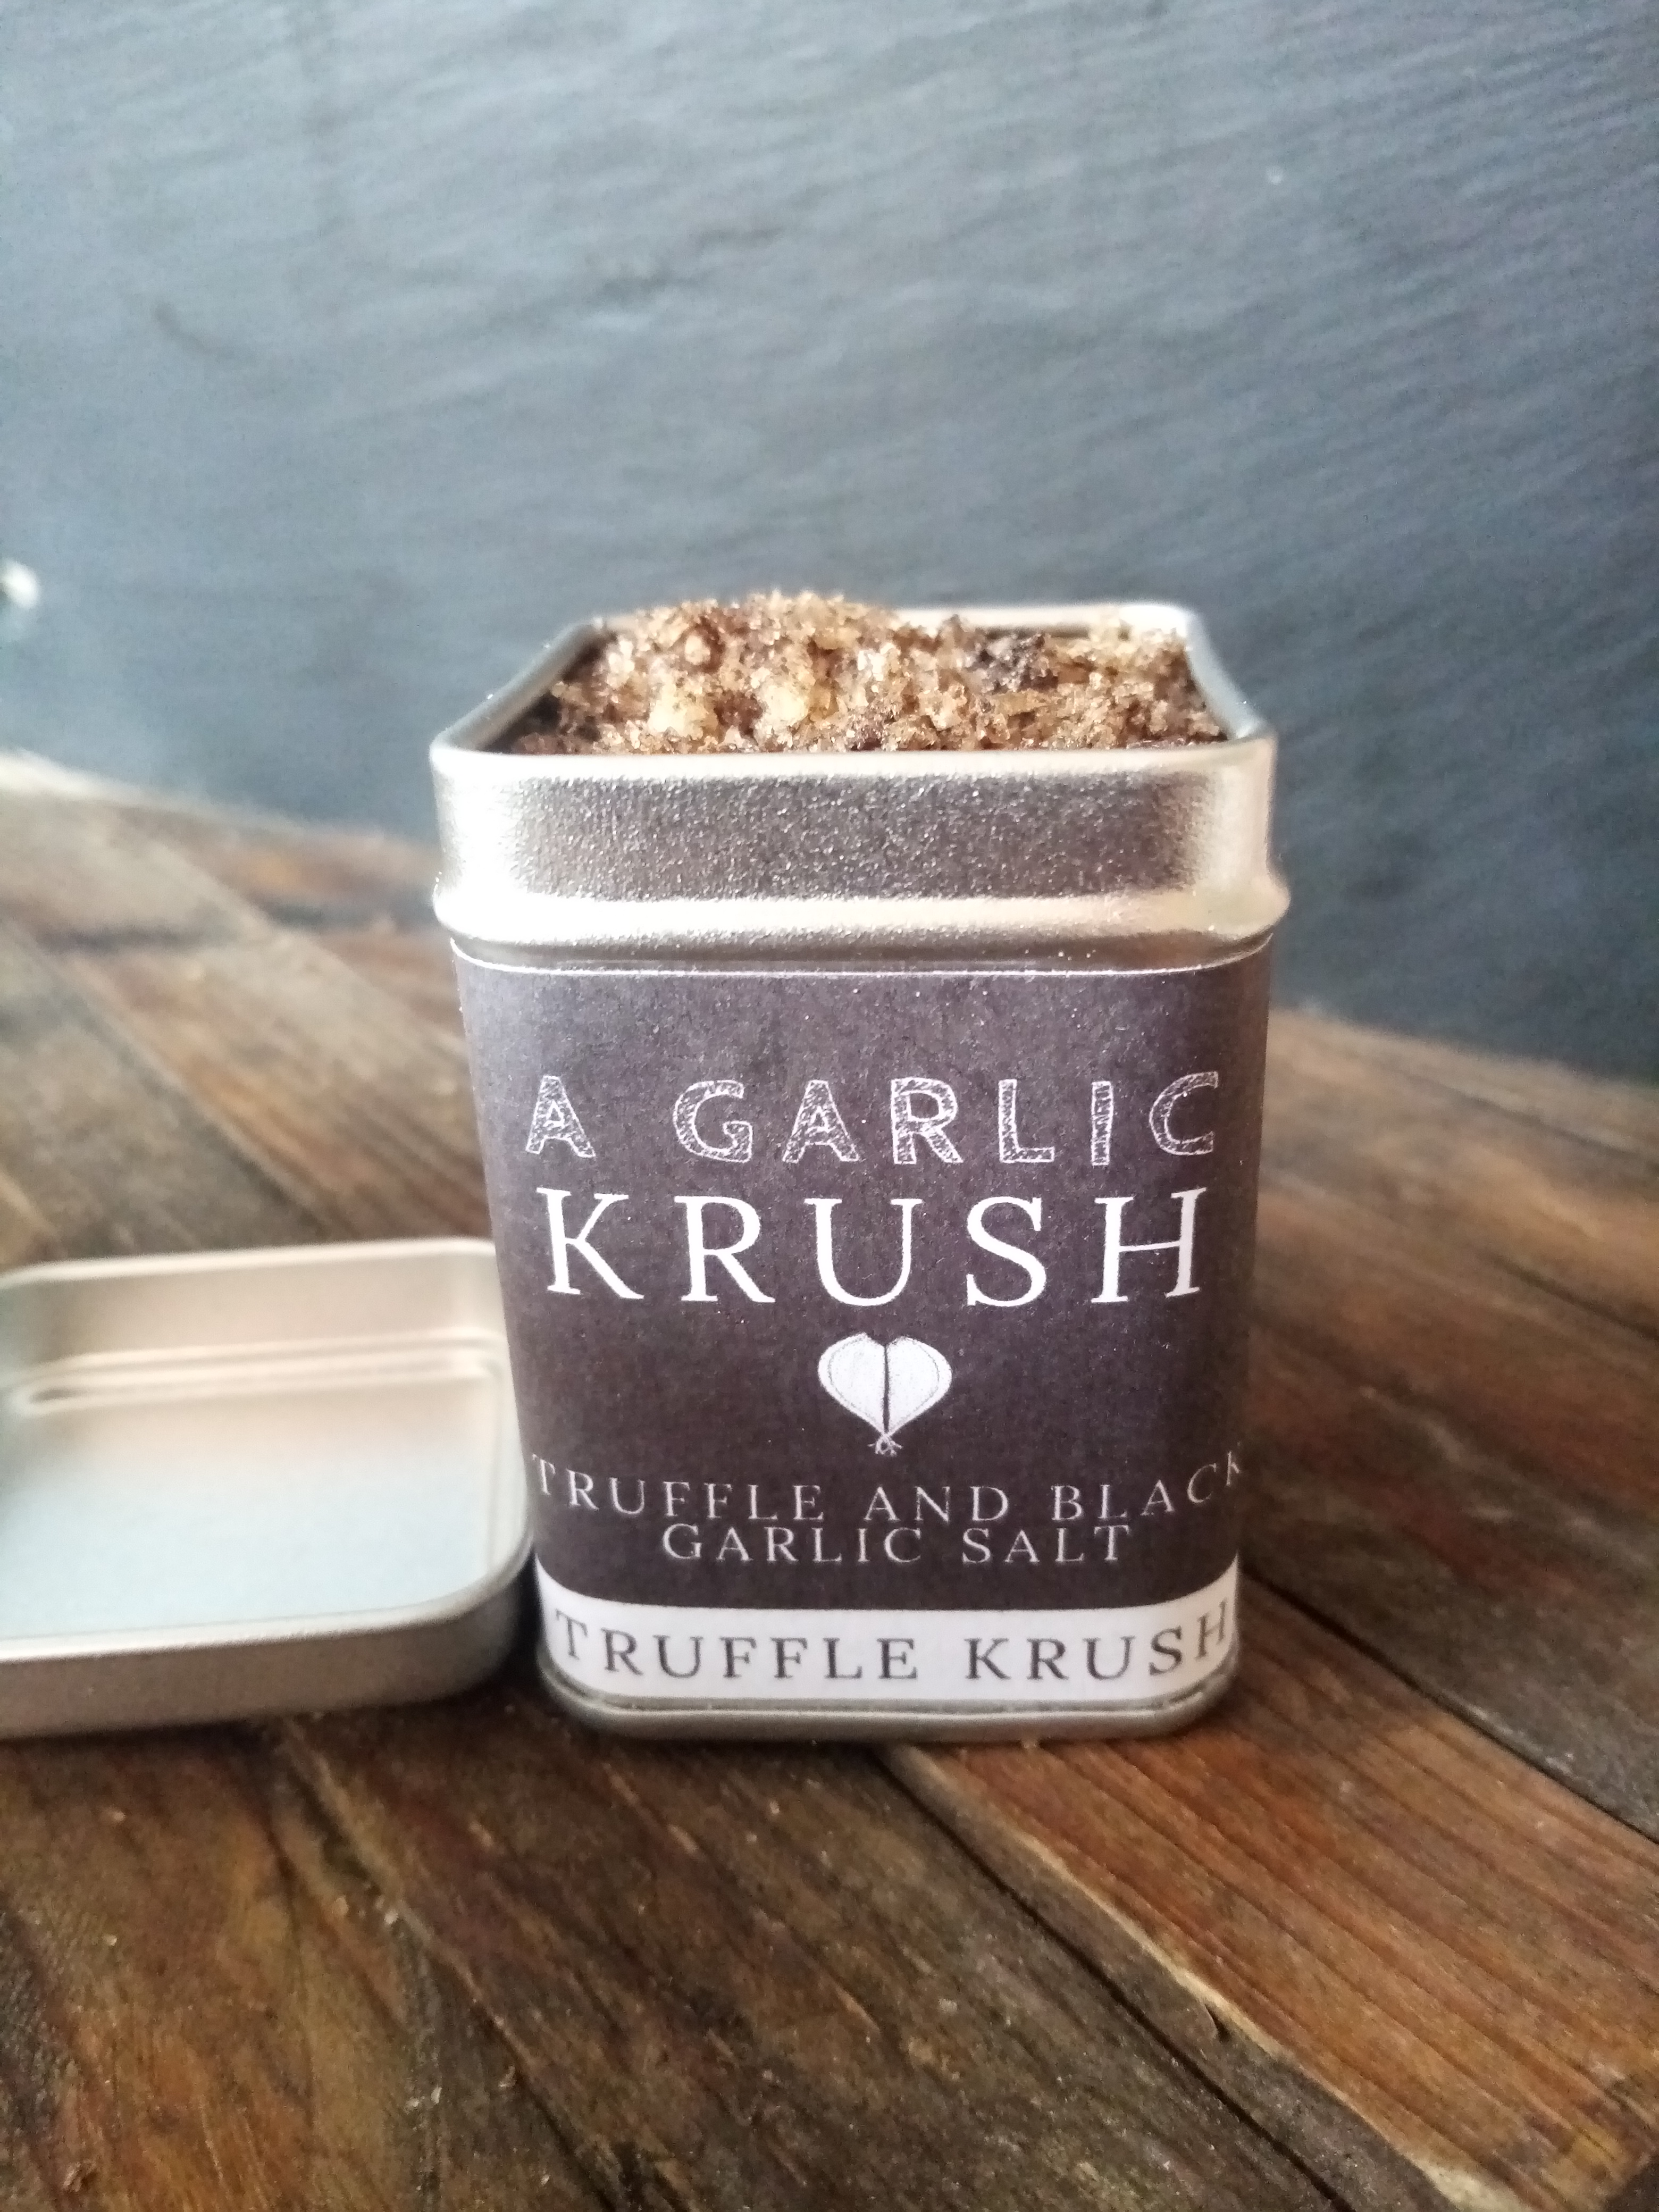 Truffle & Black Garlic Sea Salt. Truffle Krush